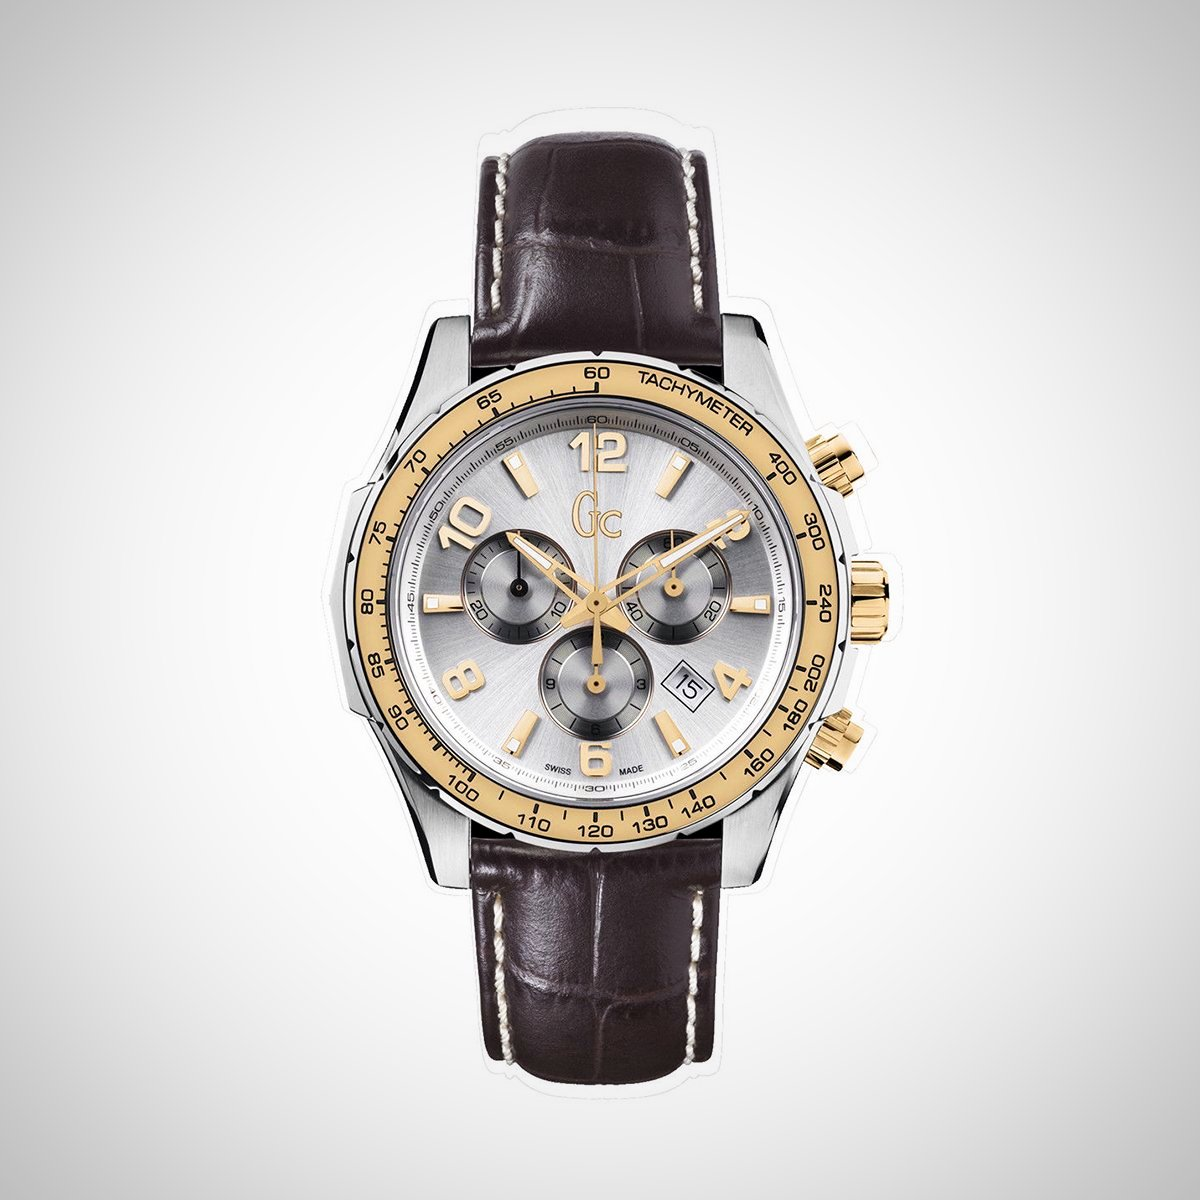 Guess Collection X51005G1S Mens Chronograph Two Tone Quartz Leather Strap Watch